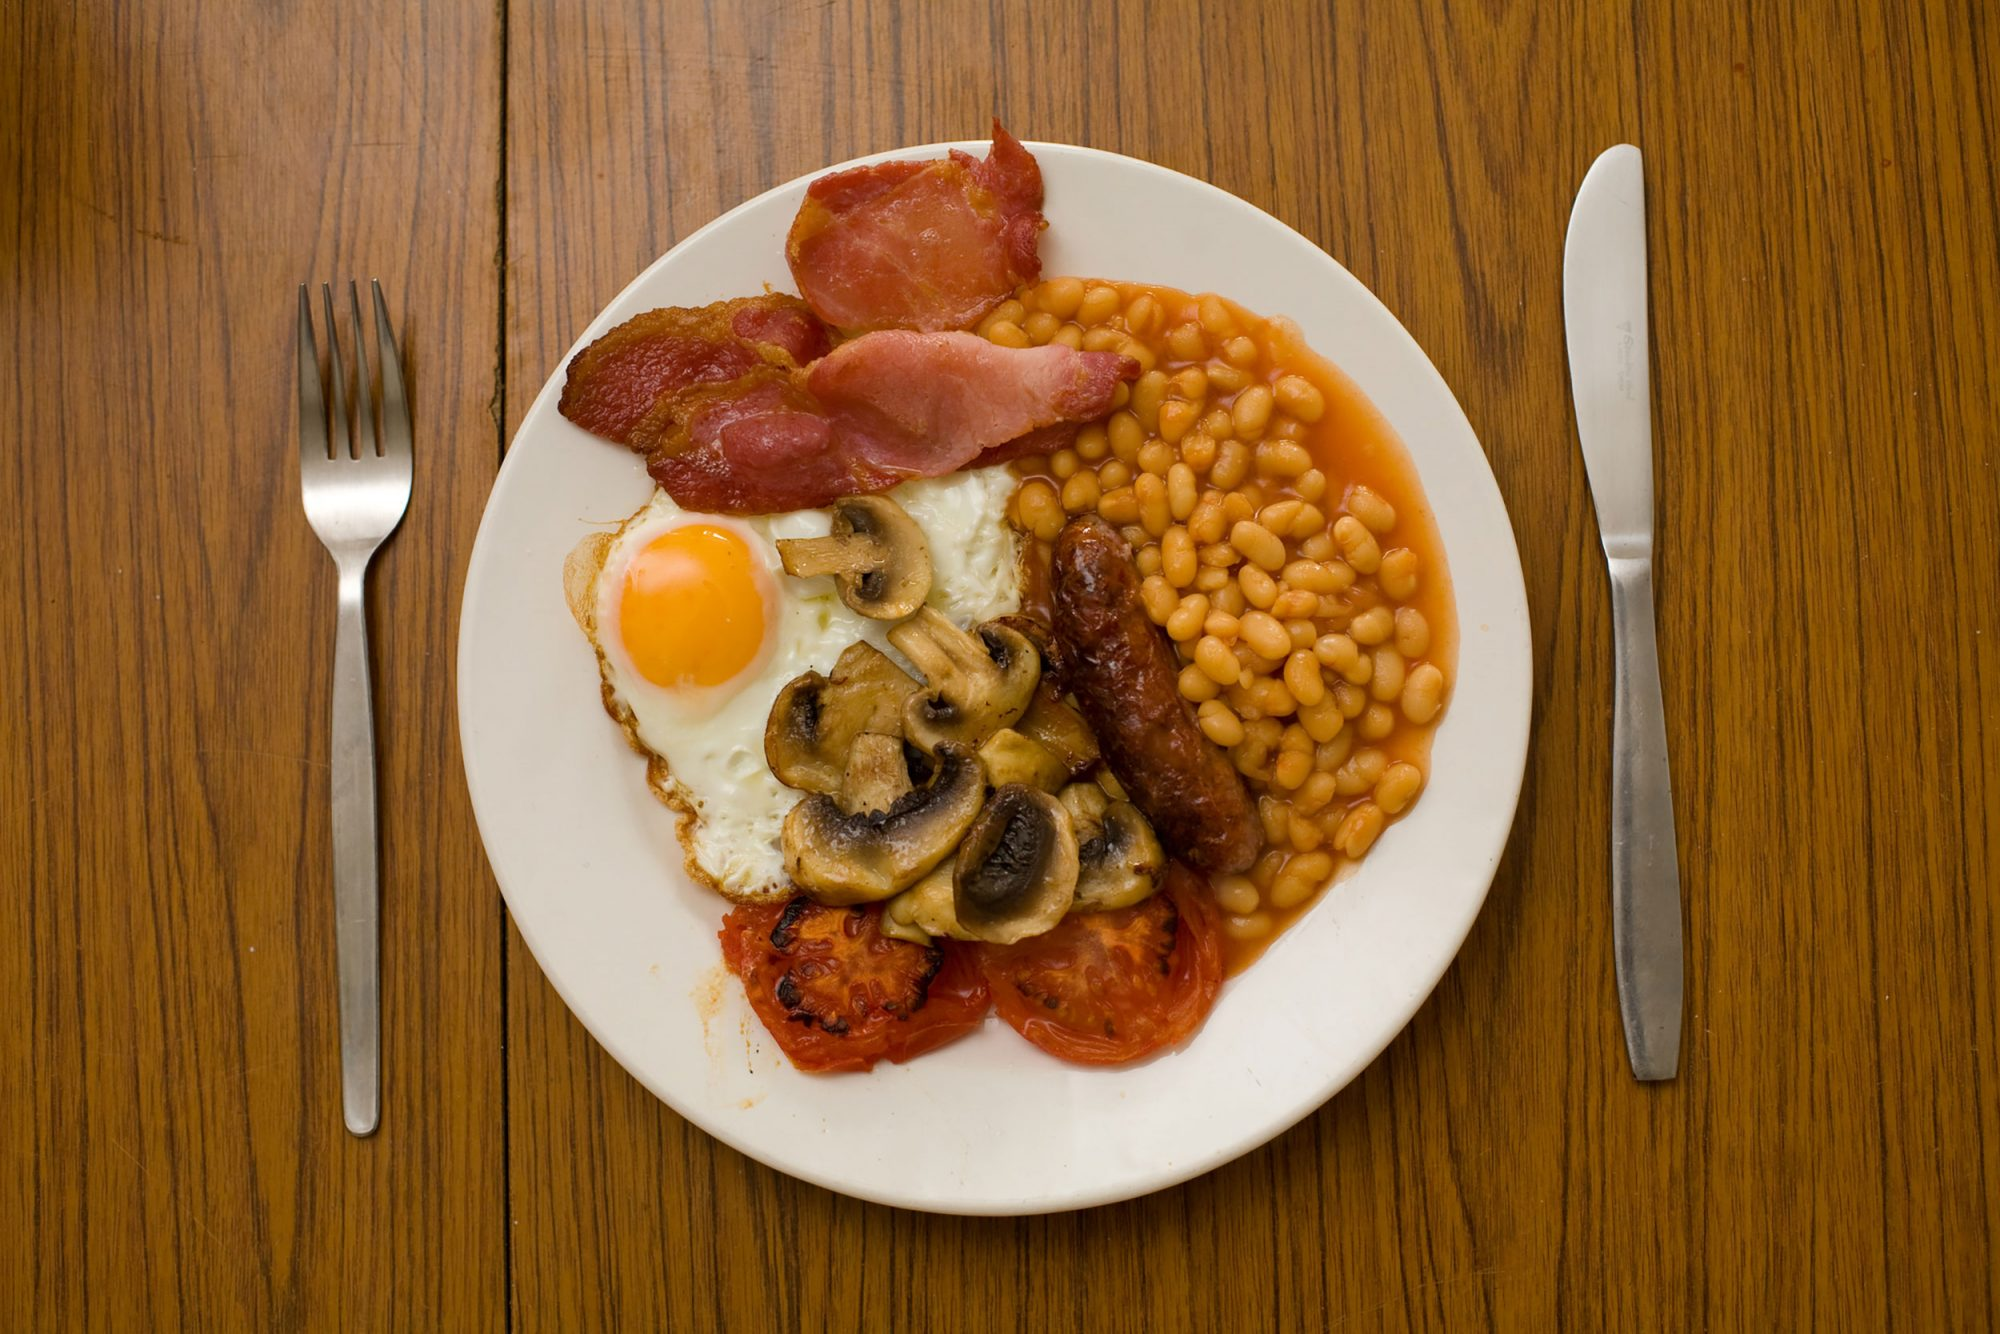 EC: The Fry-Up Police Are Judging Your Breakfast